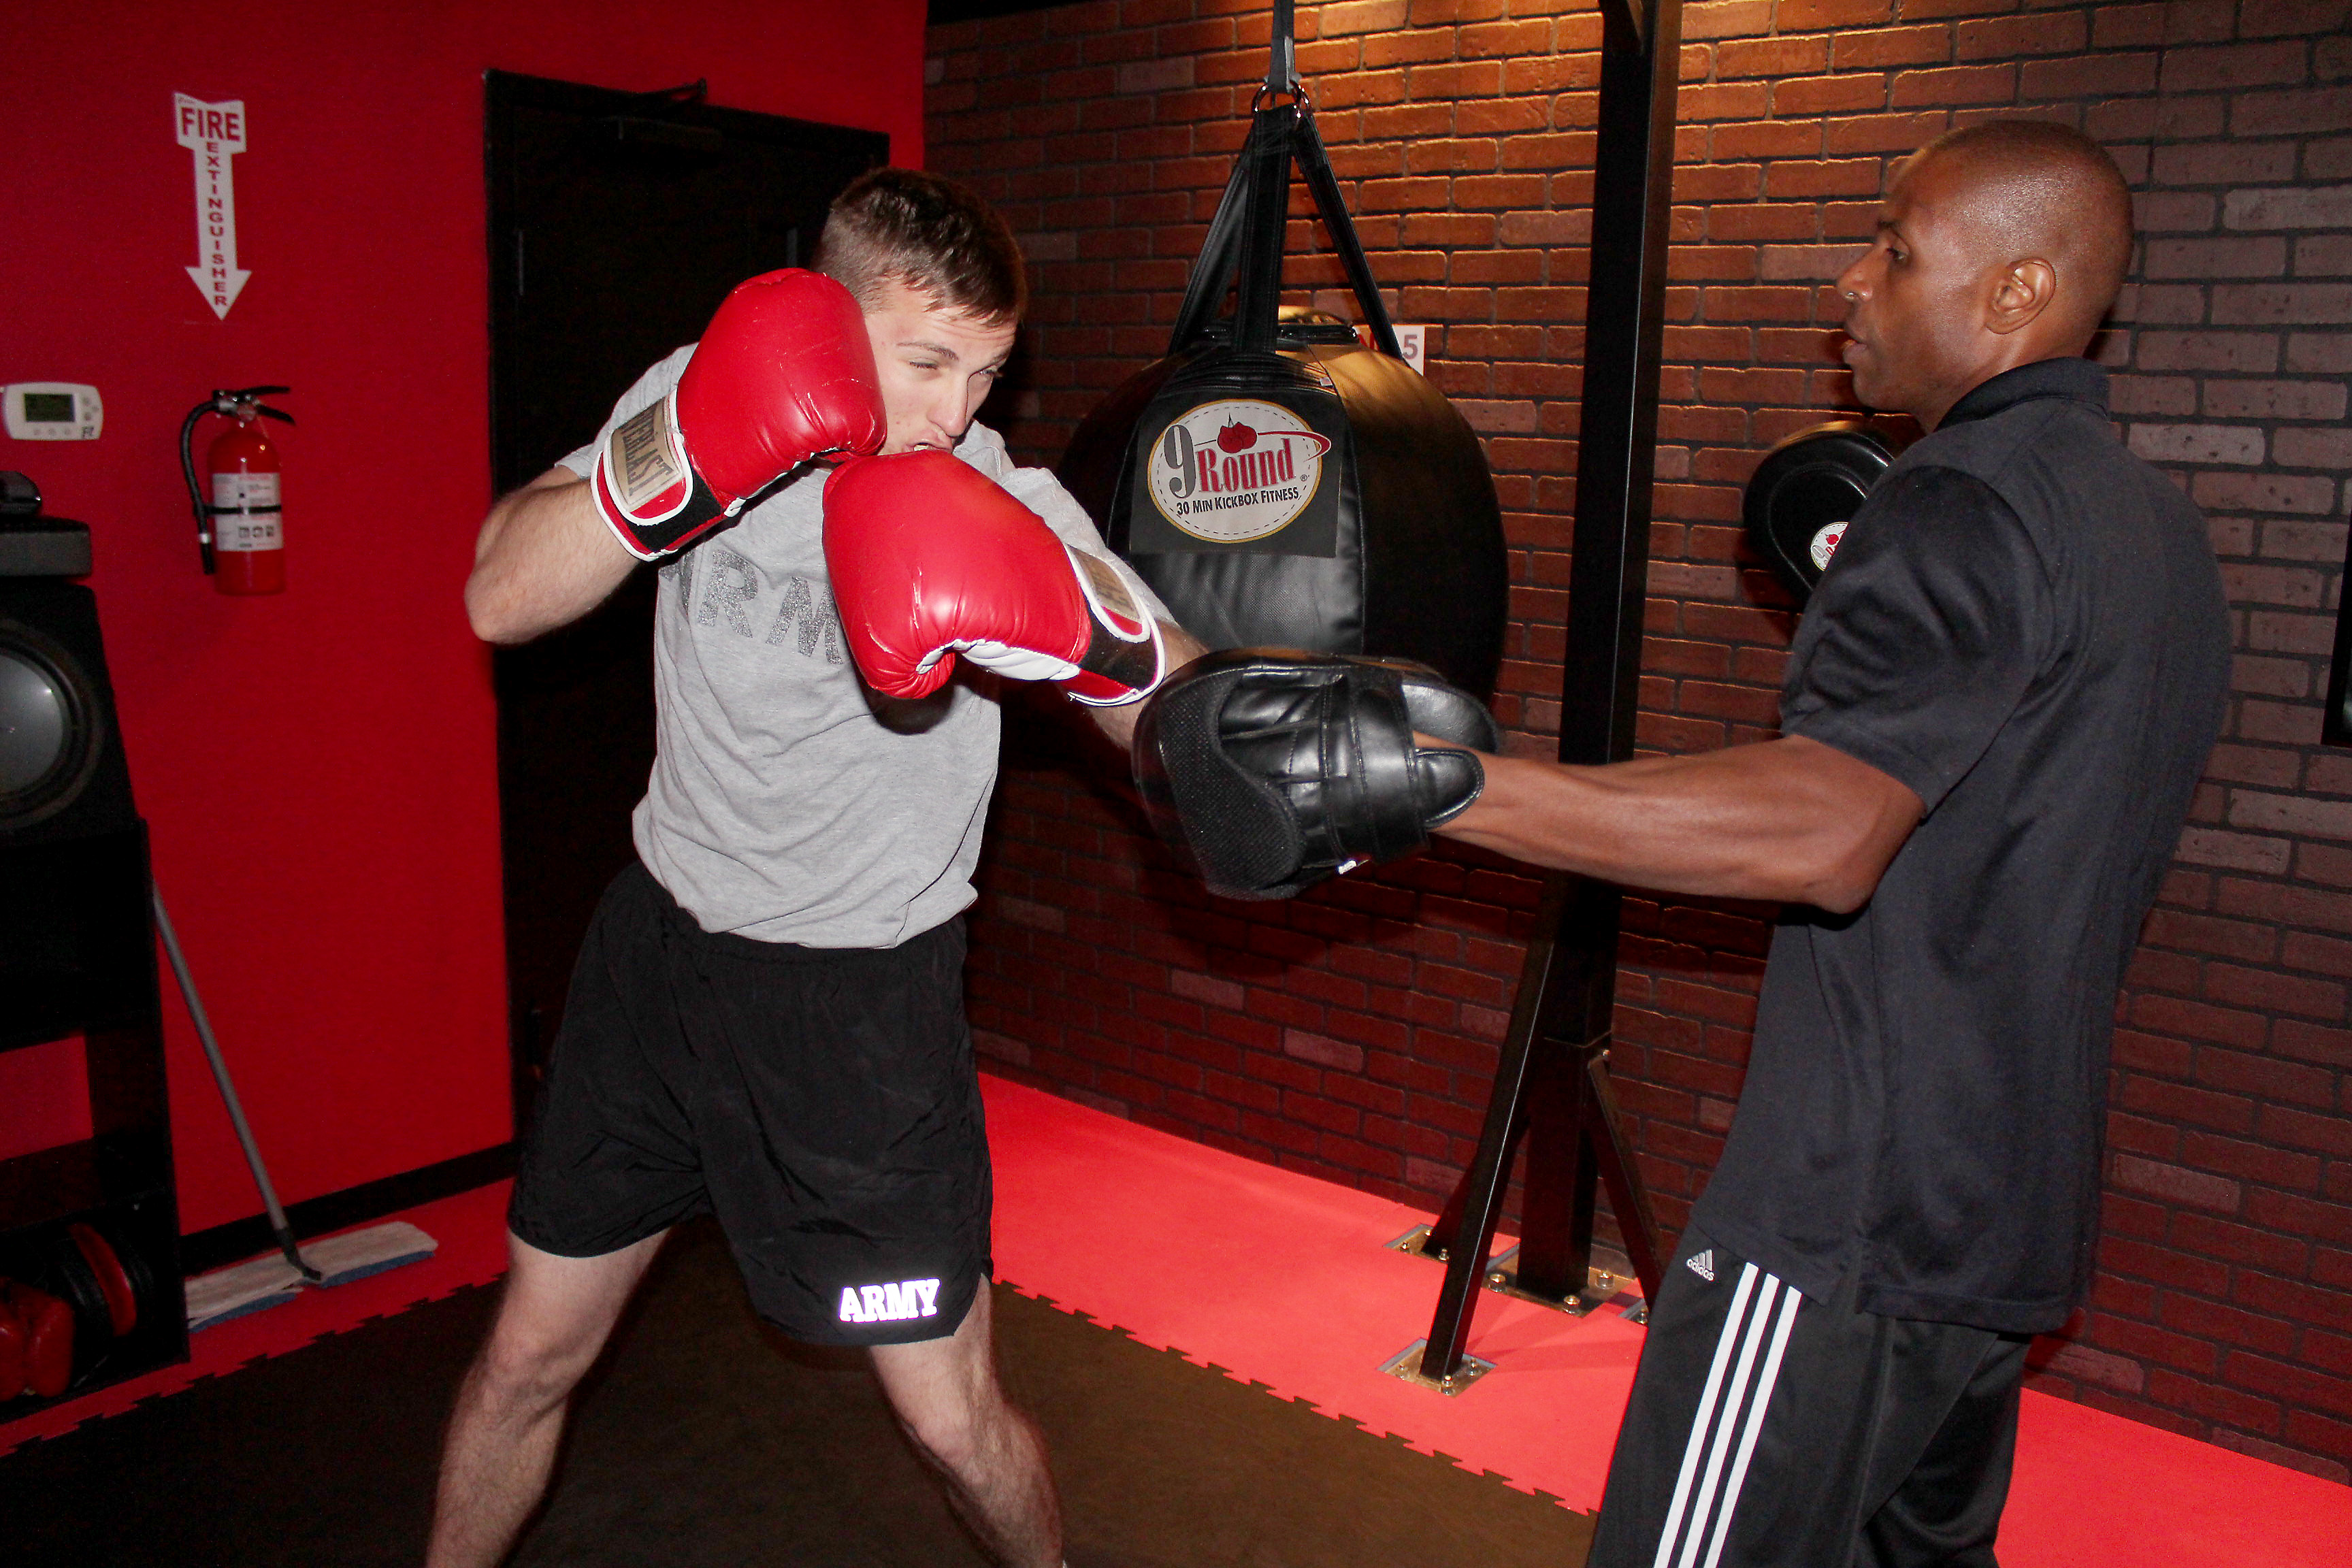 9Rounds Kickboxing